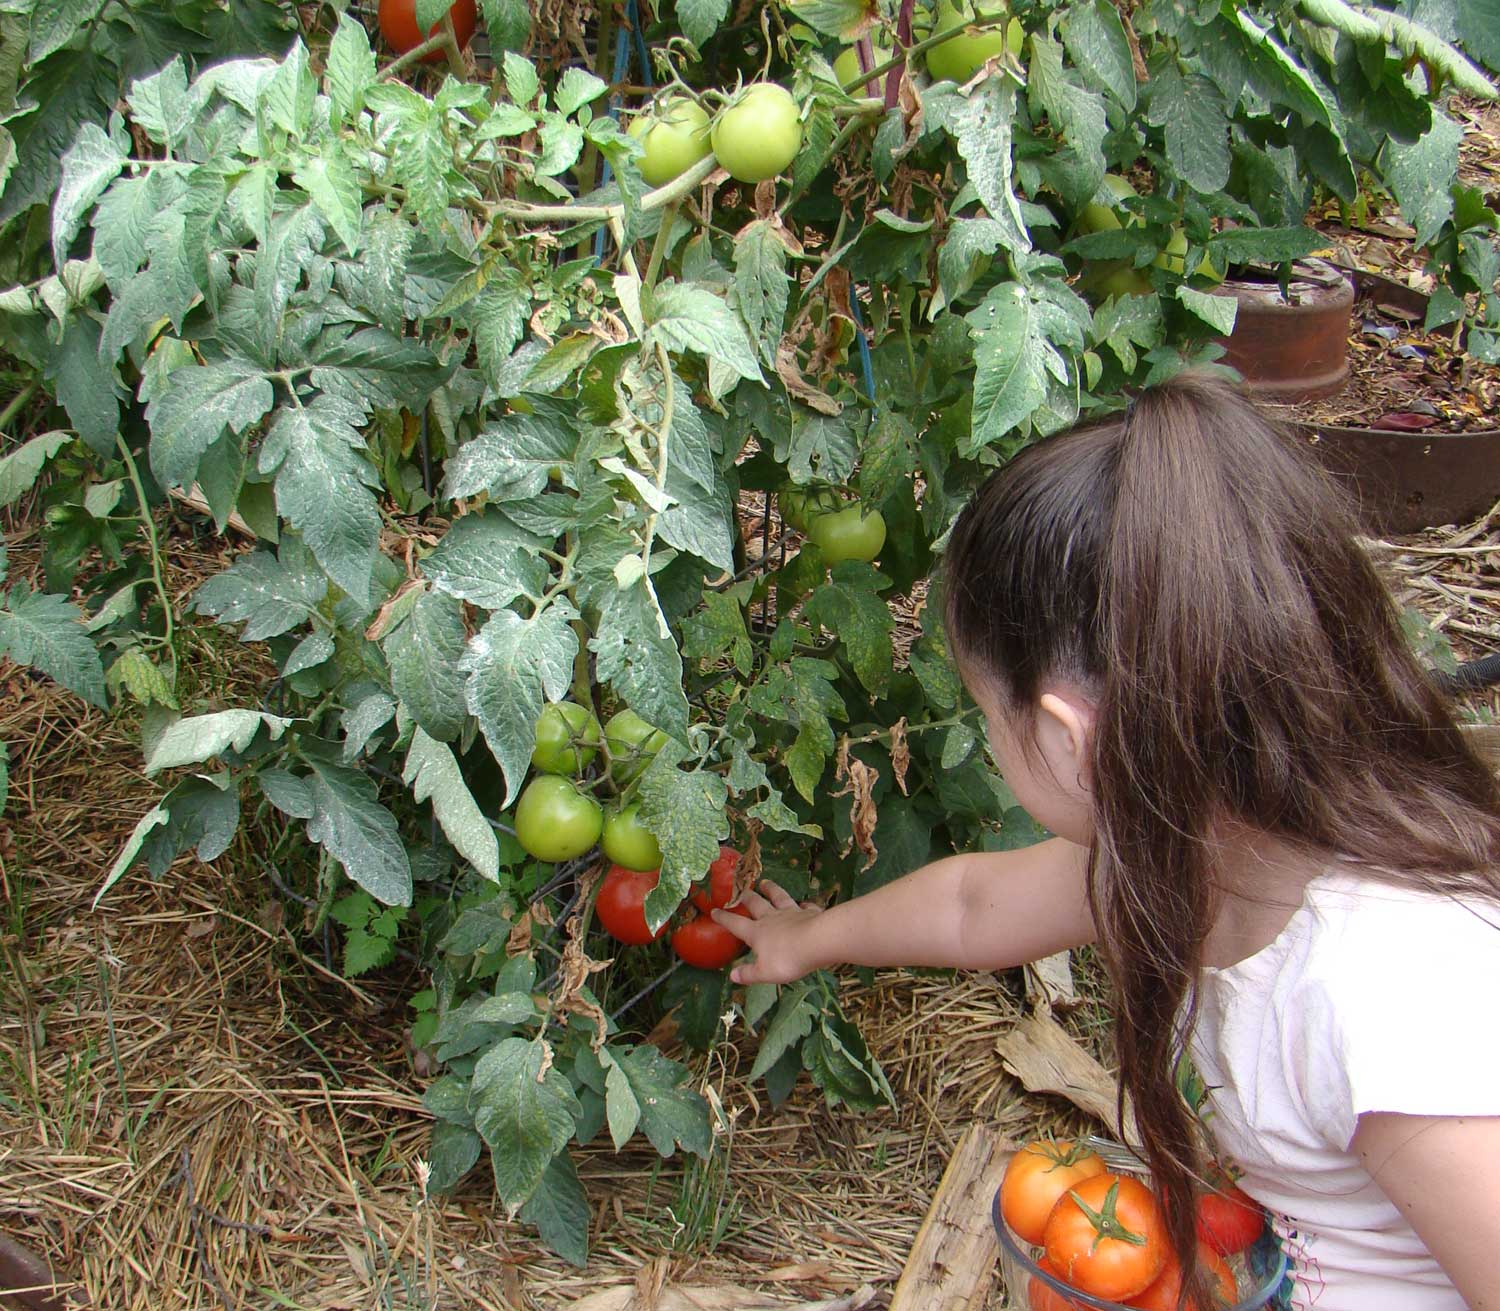 Tookii things to do with kids with tomato plant one of the outdoor activities for kids